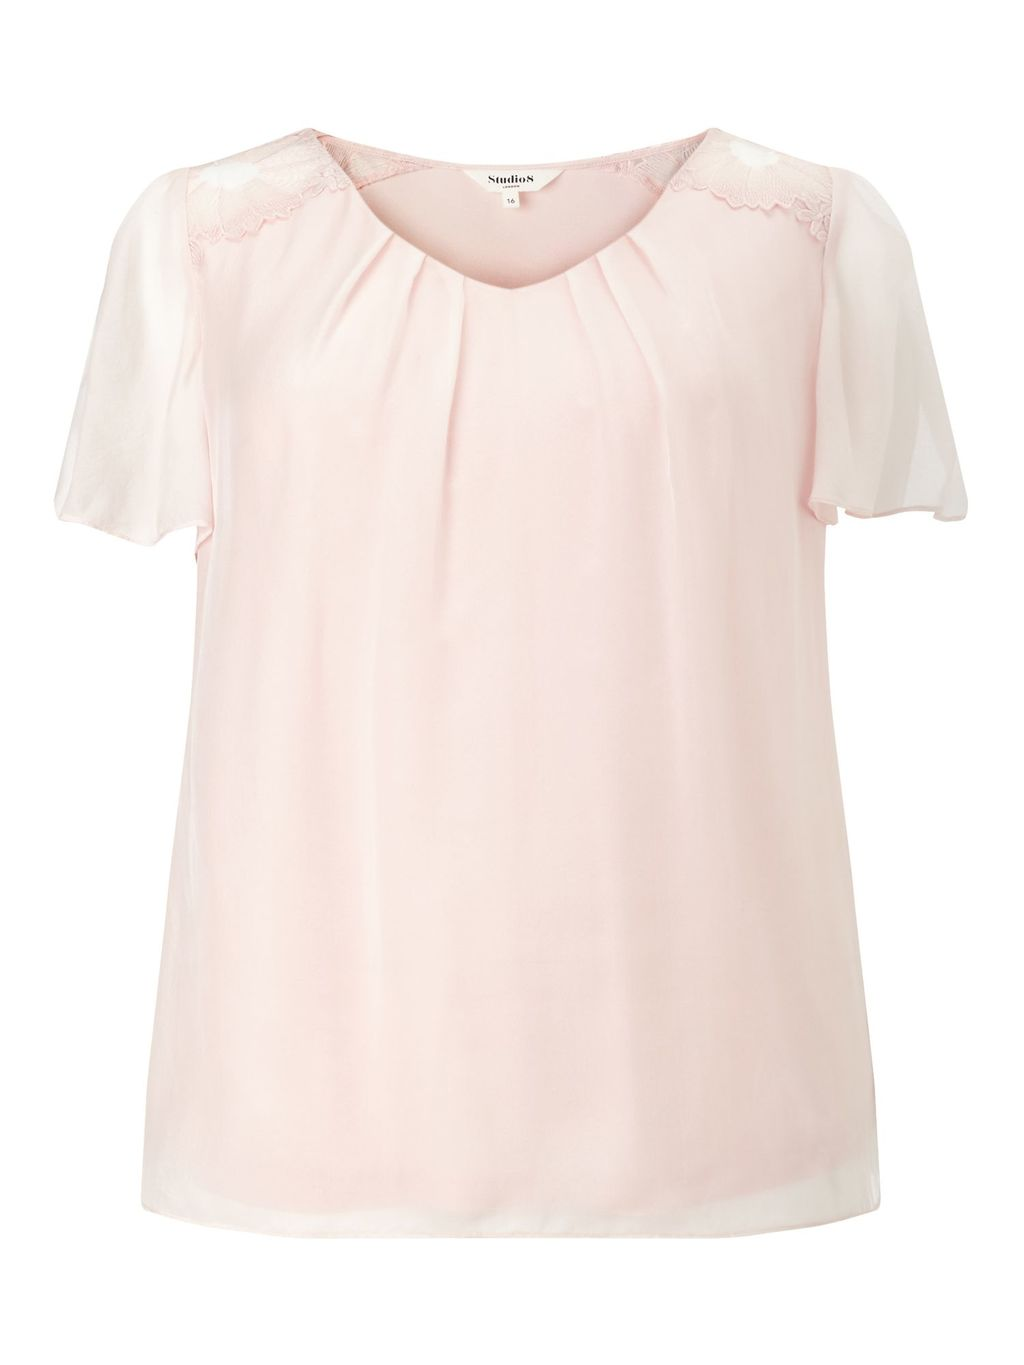 Tammy Top, Blush - neckline: v-neck; pattern: plain; predominant colour: blush; occasions: casual; length: standard; style: top; fibres: silk - 100%; fit: body skimming; sleeve length: short sleeve; sleeve style: standard; texture group: crepes; pattern type: fabric; season: s/s 2016; wardrobe: basic